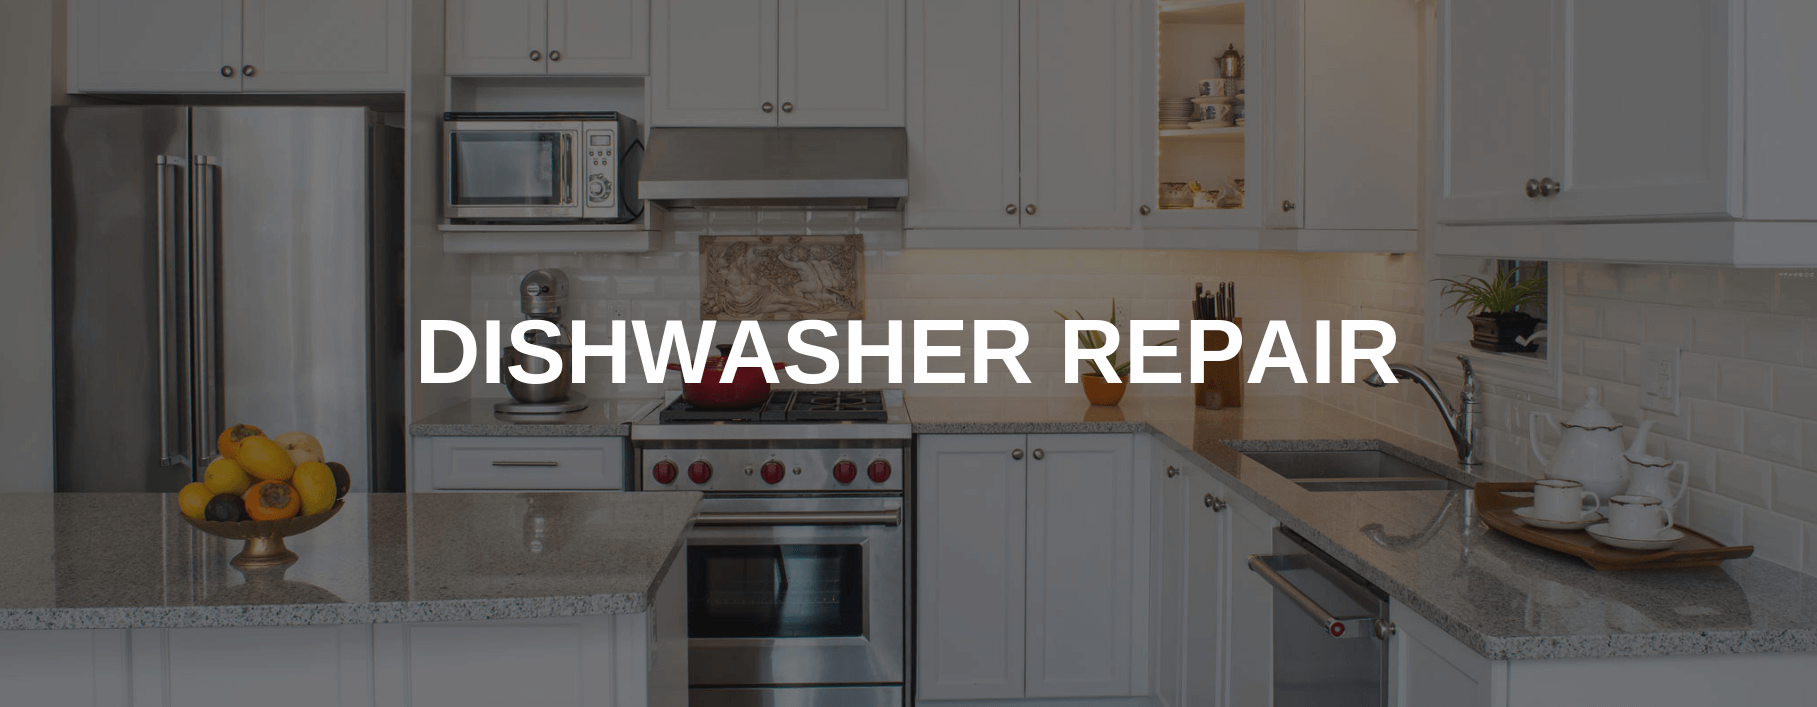 dishwasher repair albany